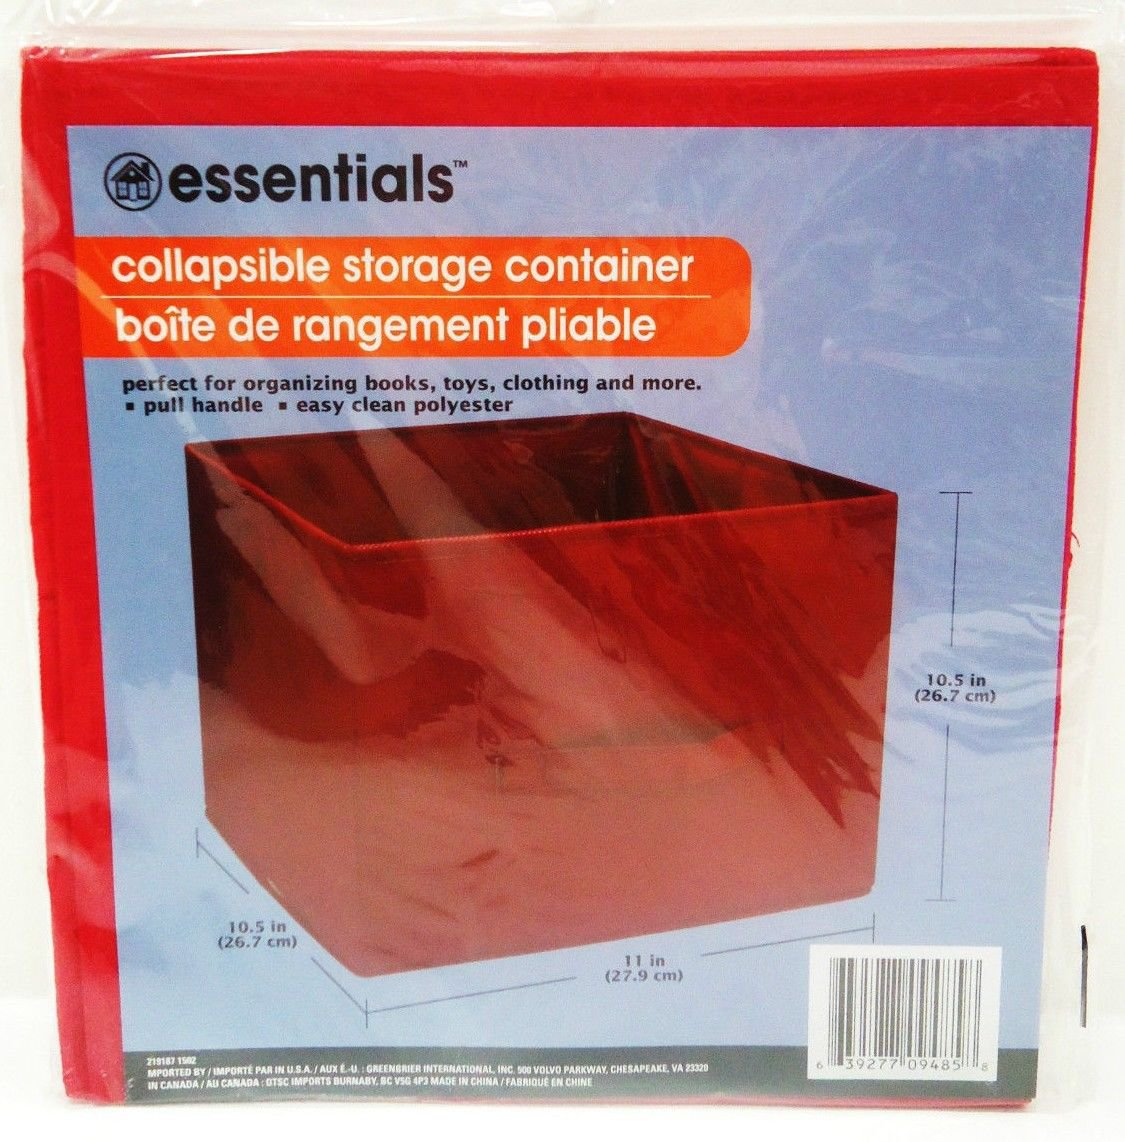 ROOM - ESSENTIALS - COLLAPSIBLE - STORAGE - CONTAINER - 11 X 10.5 - RED - NEW